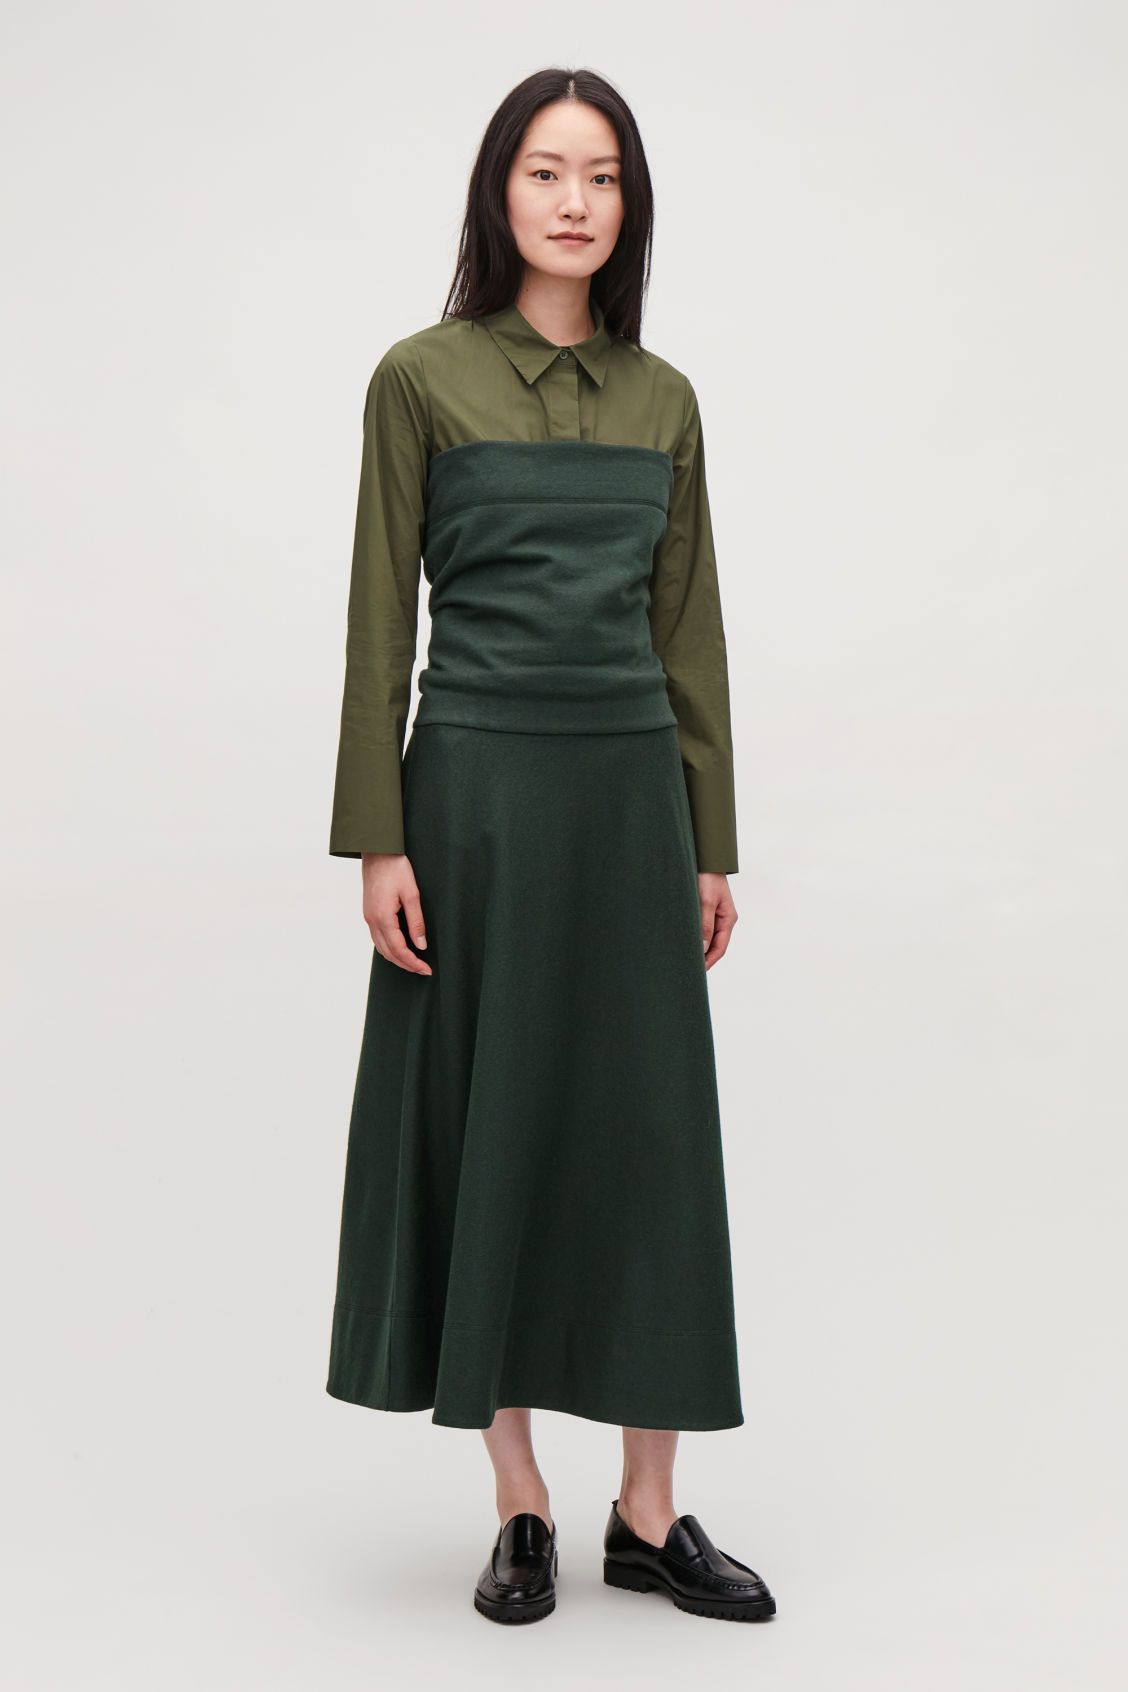 Cos green dress 2018  Model front image of Cos layered strapless wool dress in green